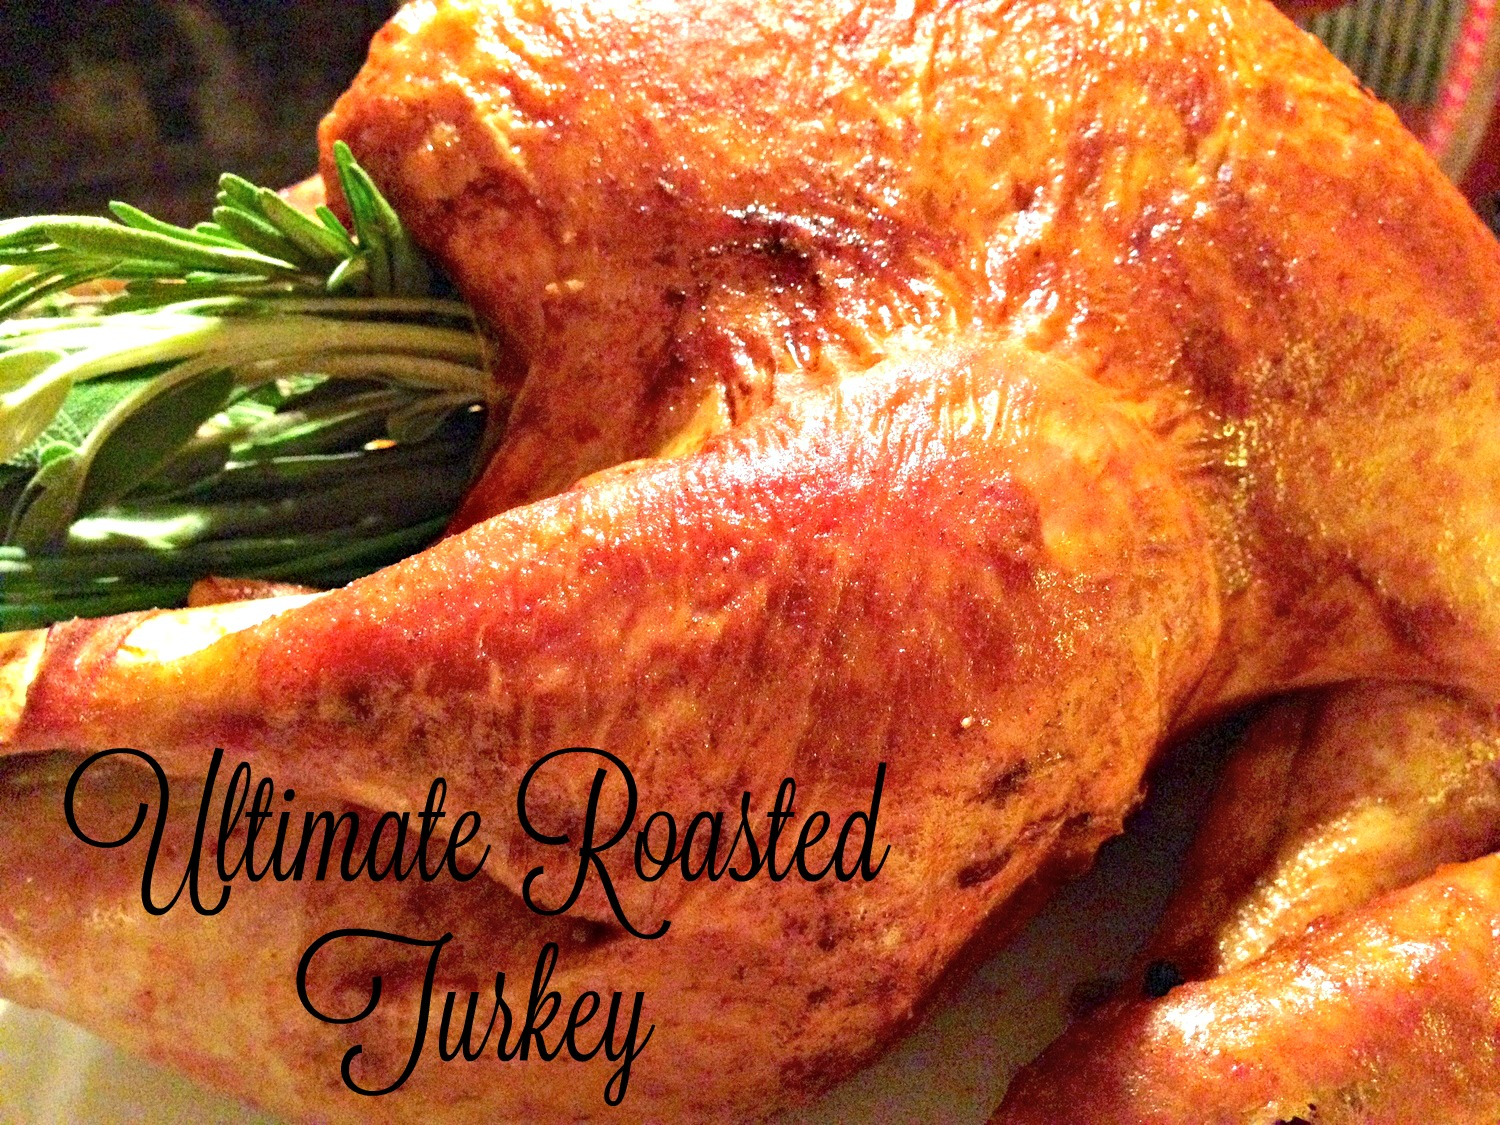 Sharing Thanksgiving Recipes – Ultimate Roasted Turkey & Cranberry Chutney